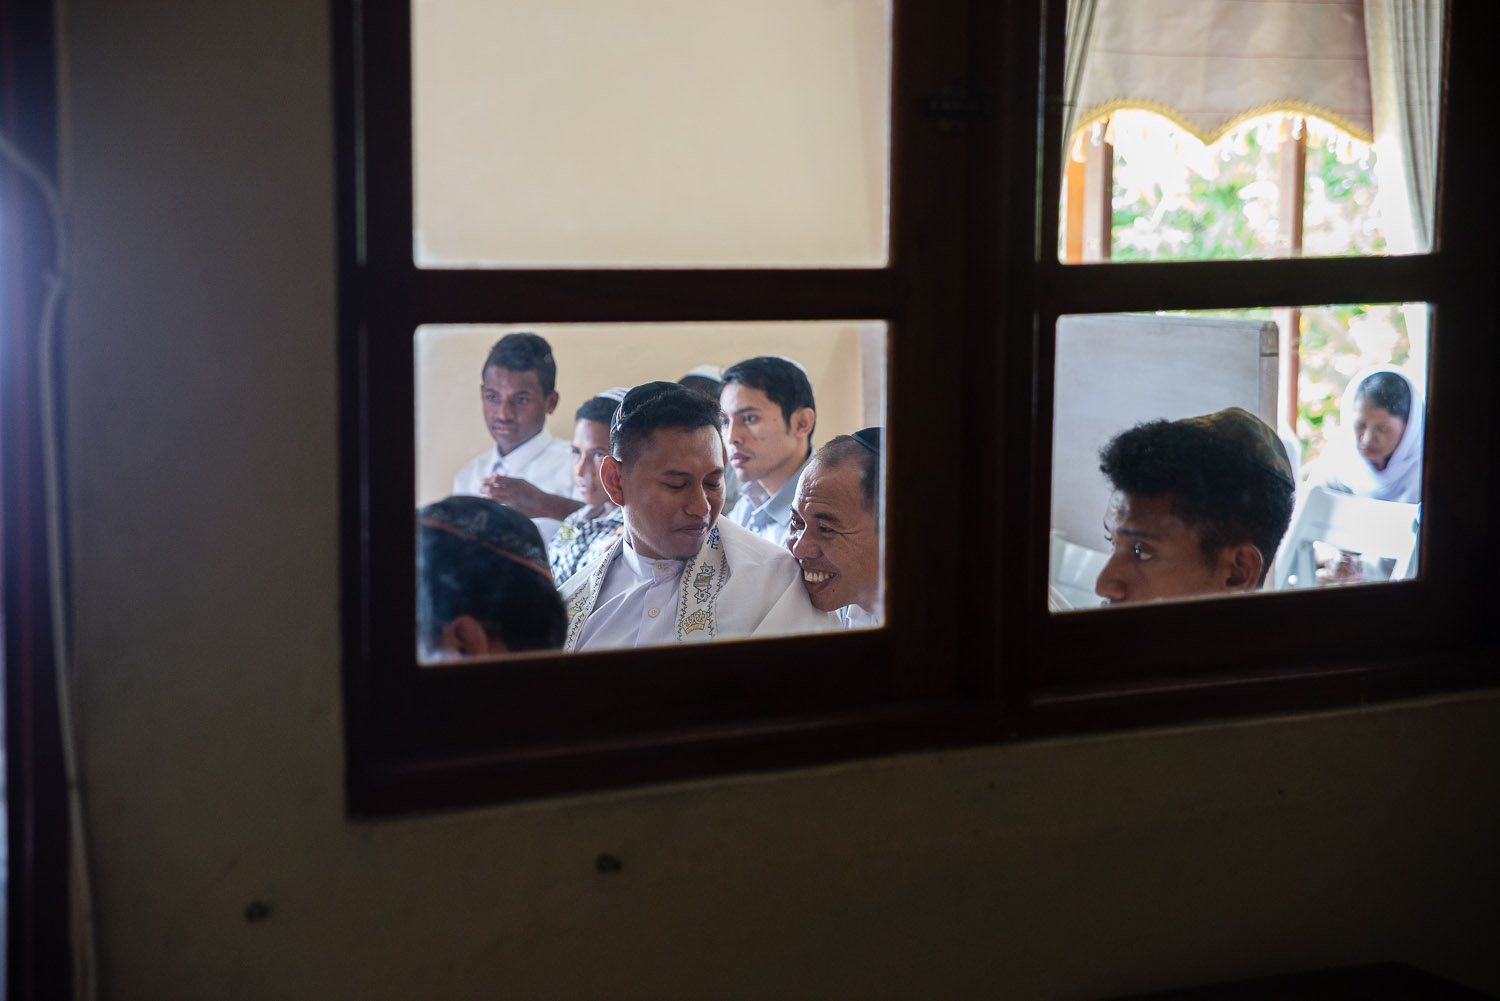 Men greet each other after Saturday morning services finish in Jayapura. The Jews in Papua have African, Peruvian, and Indian roots